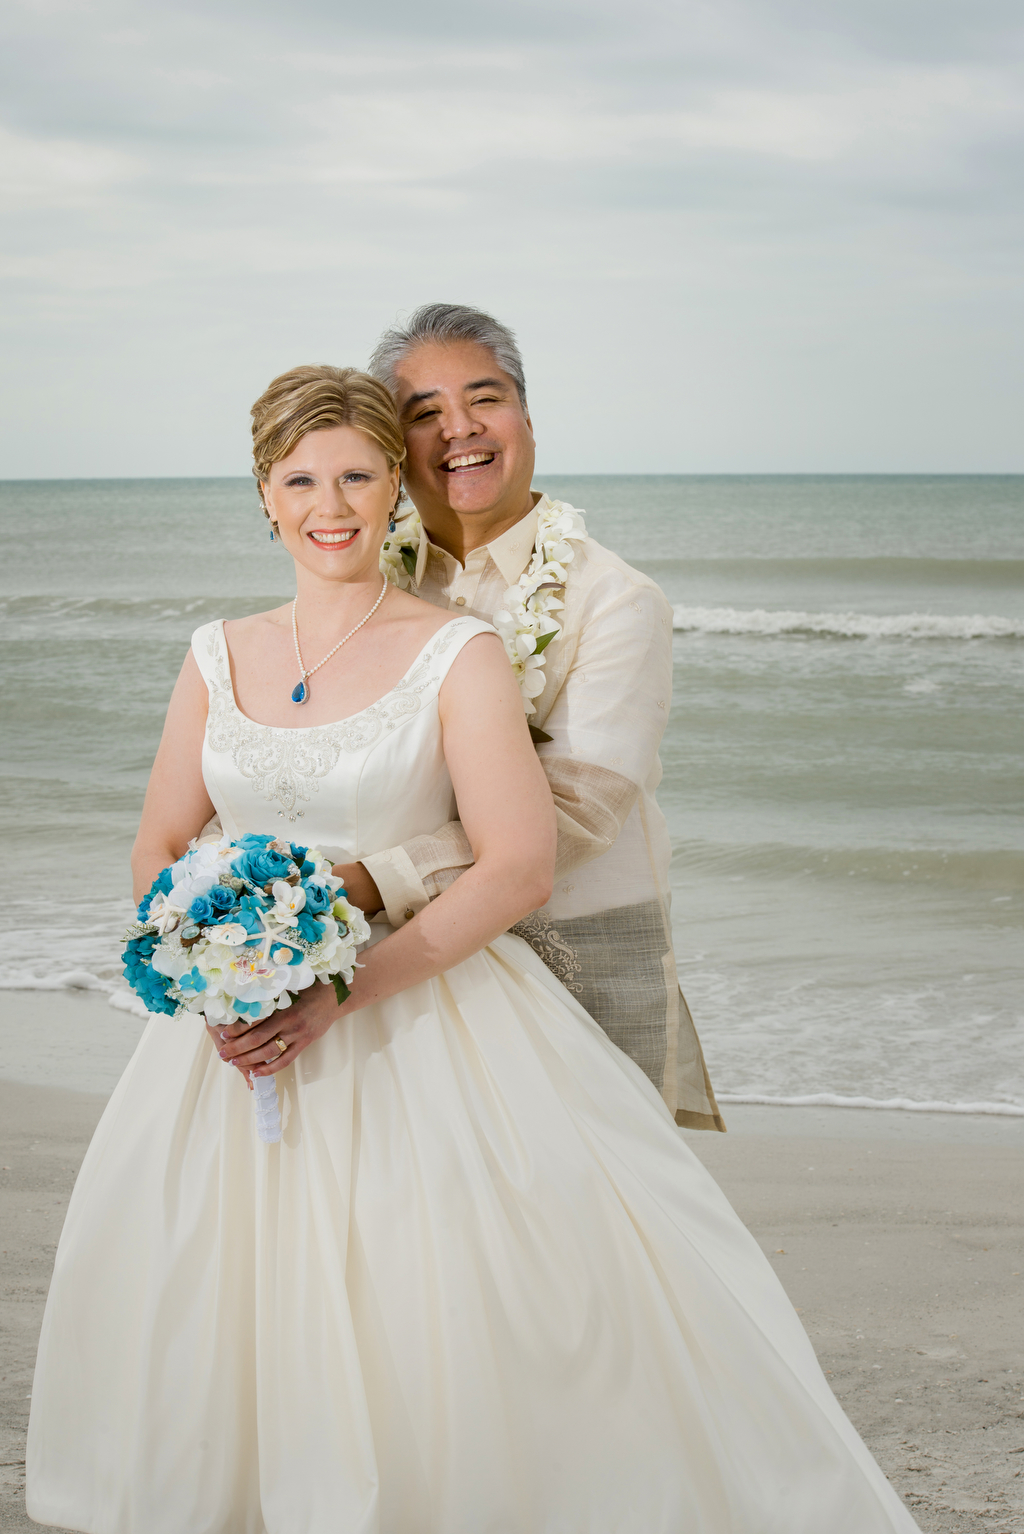 Anitra Pavka and Joey deVilla's wedding photo —Anitra posing with the beach behind them at St. Pete Beach.